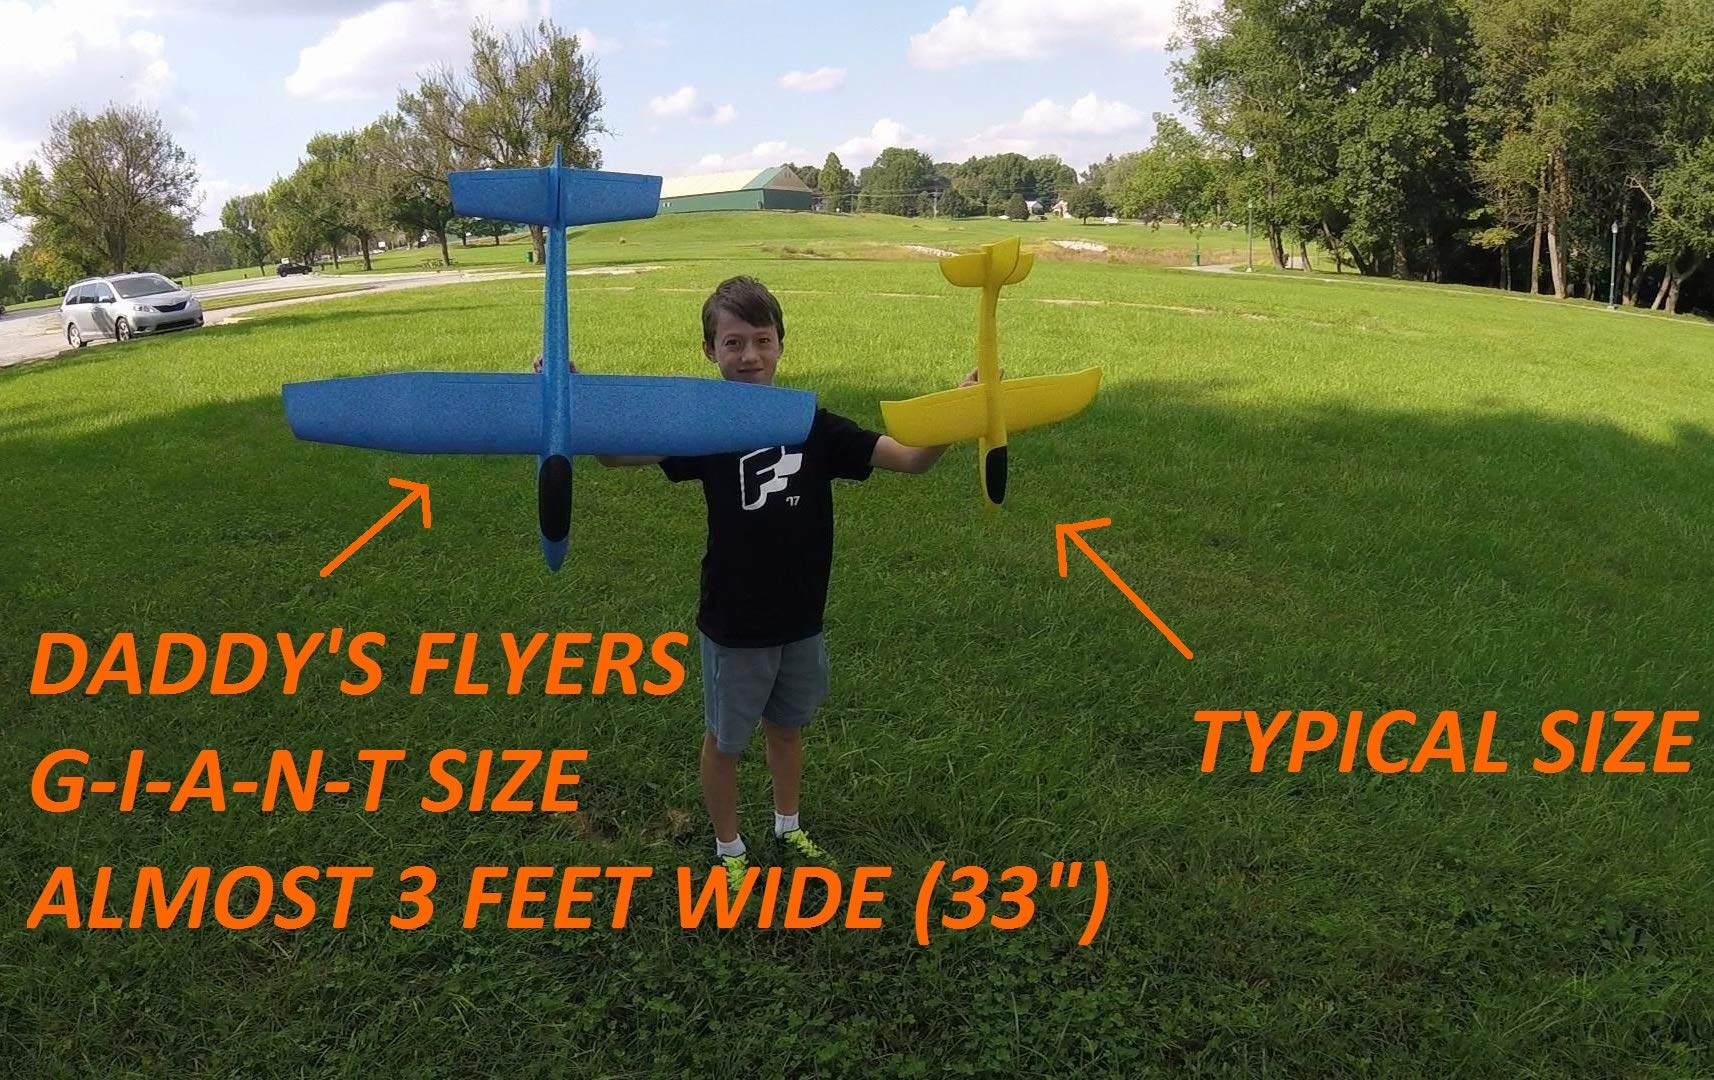 G-I-A-N-T (Almost 3 FEET), Great Flying, Almost Unbreakable, Large Foam Glider Plane. Virgin EPP Foam. Ideal for RC Conversion! Similar to LIDL Gliders Sold Out in Europe! by Daddy's Flyers (Image #8)